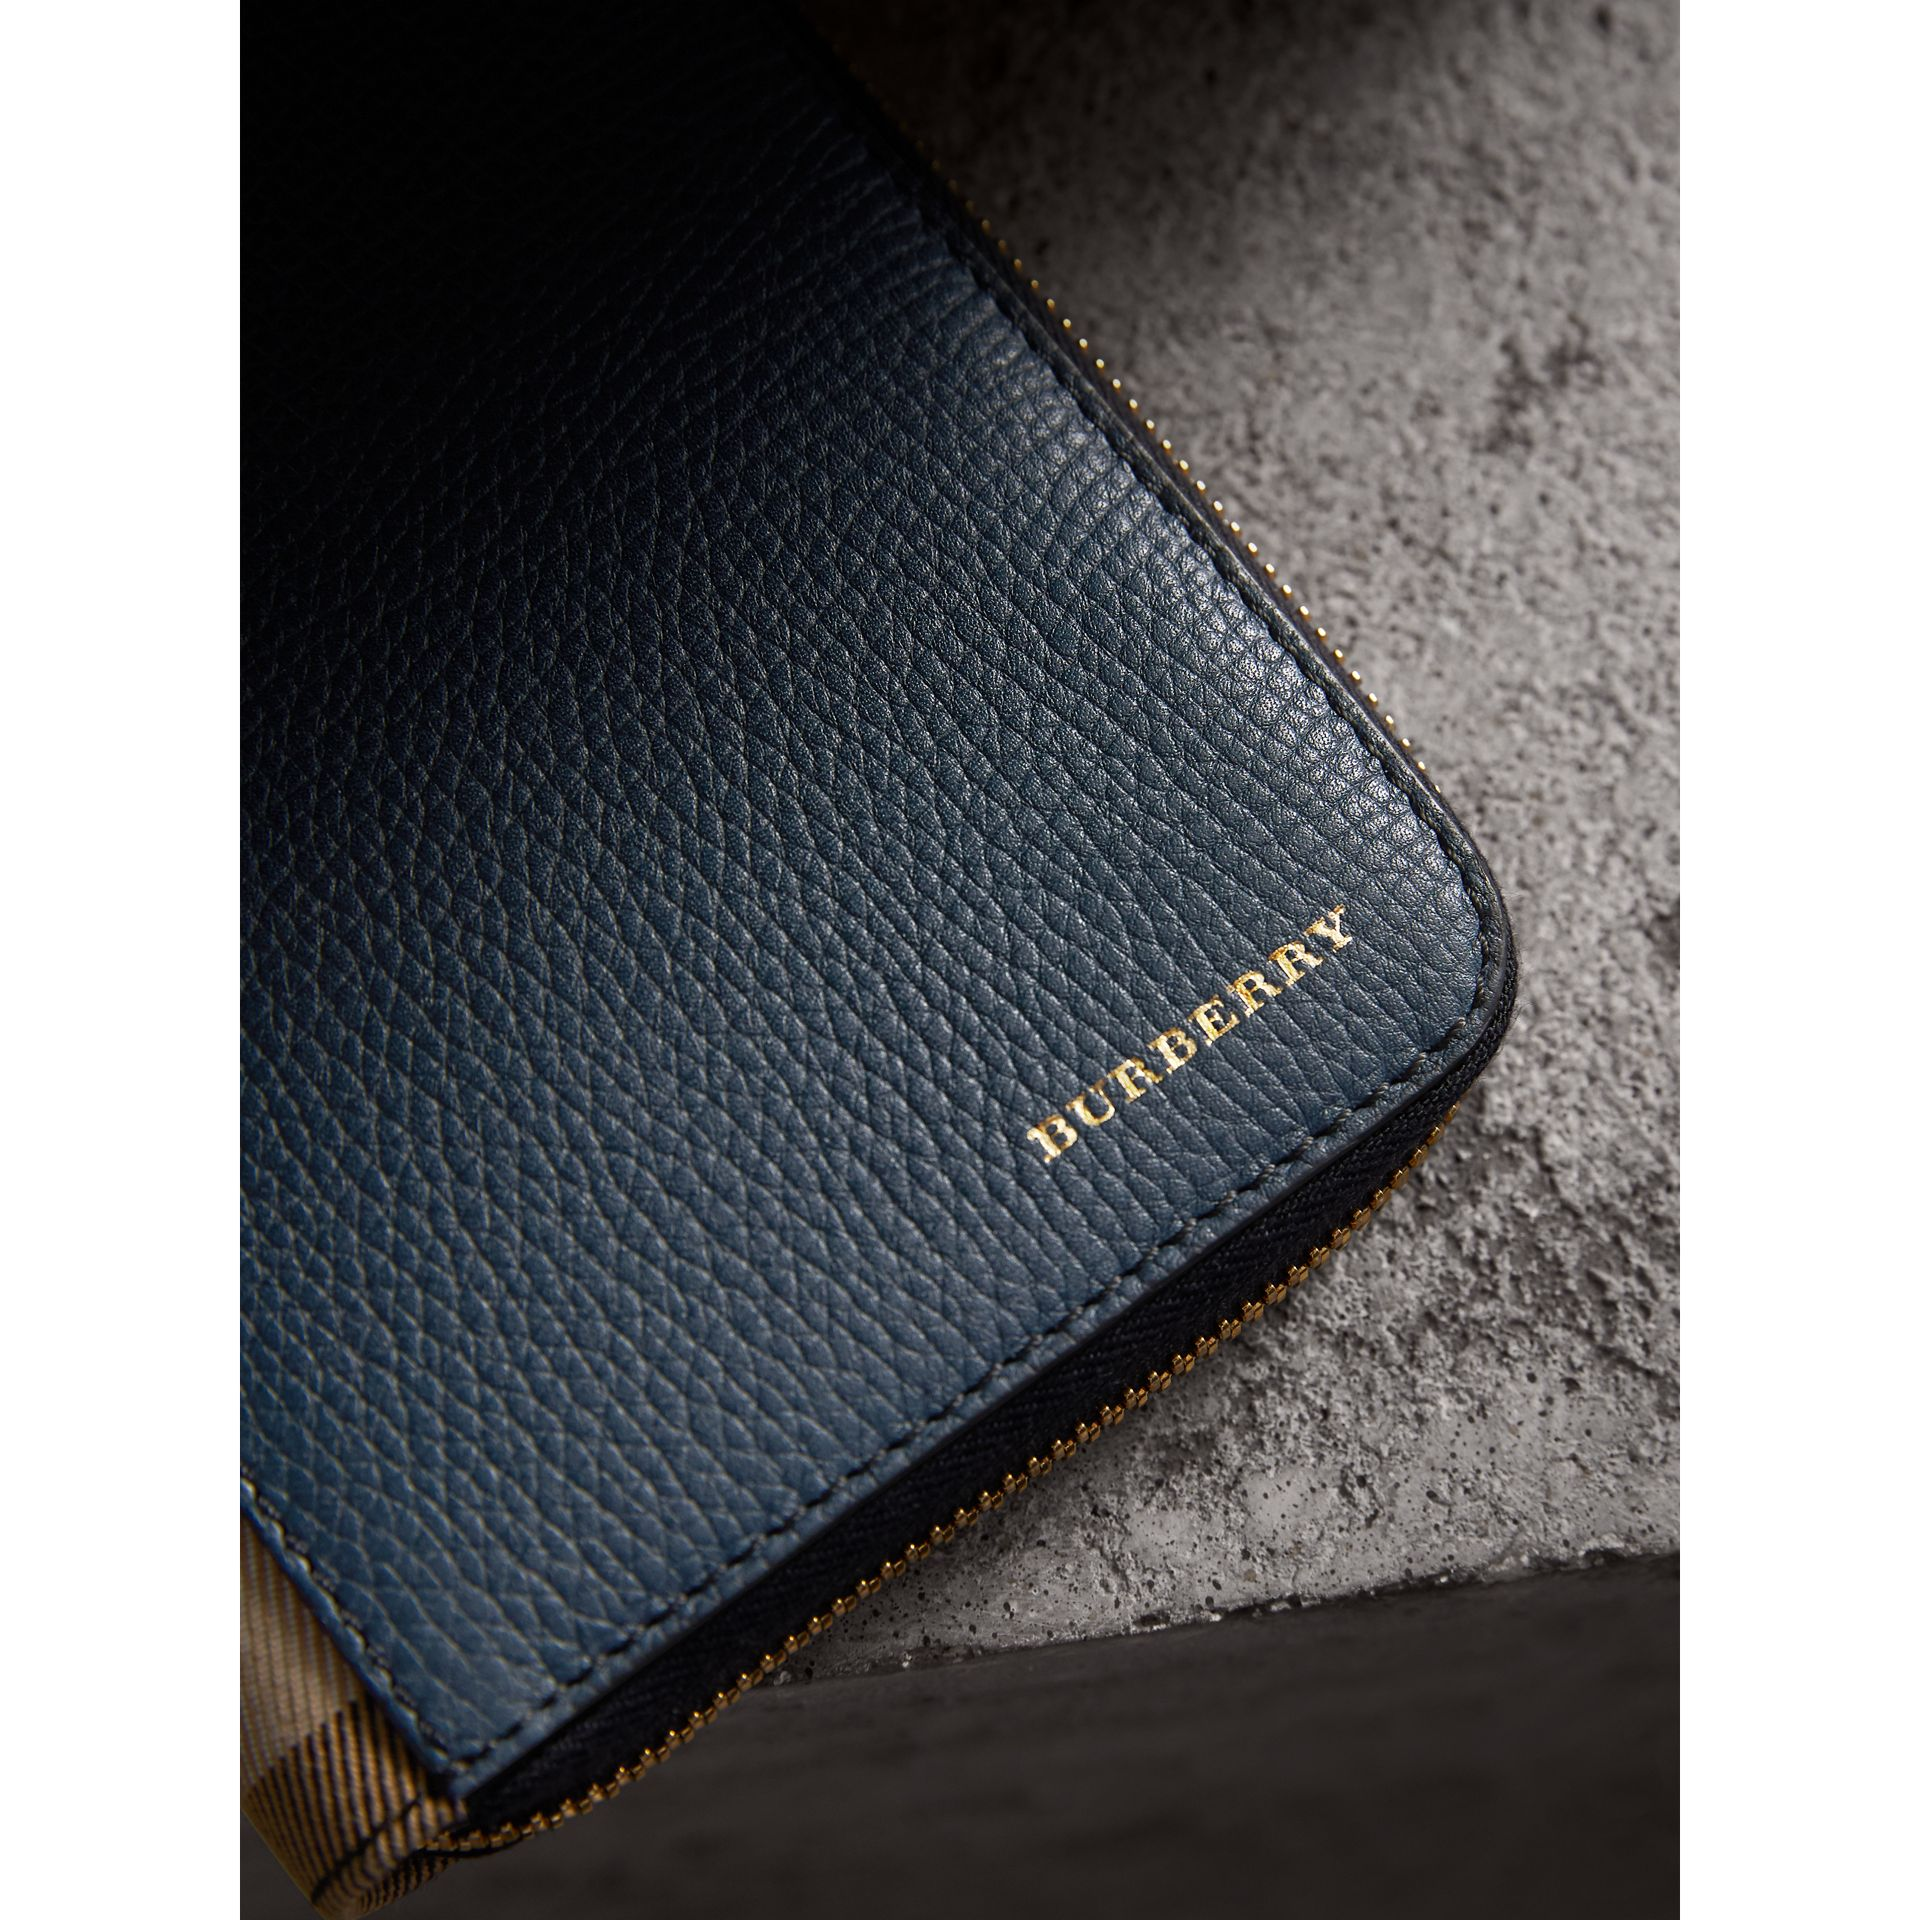 House Check and Grainy Leather Ziparound Wallet in Storm Blue | Burberry - gallery image 4